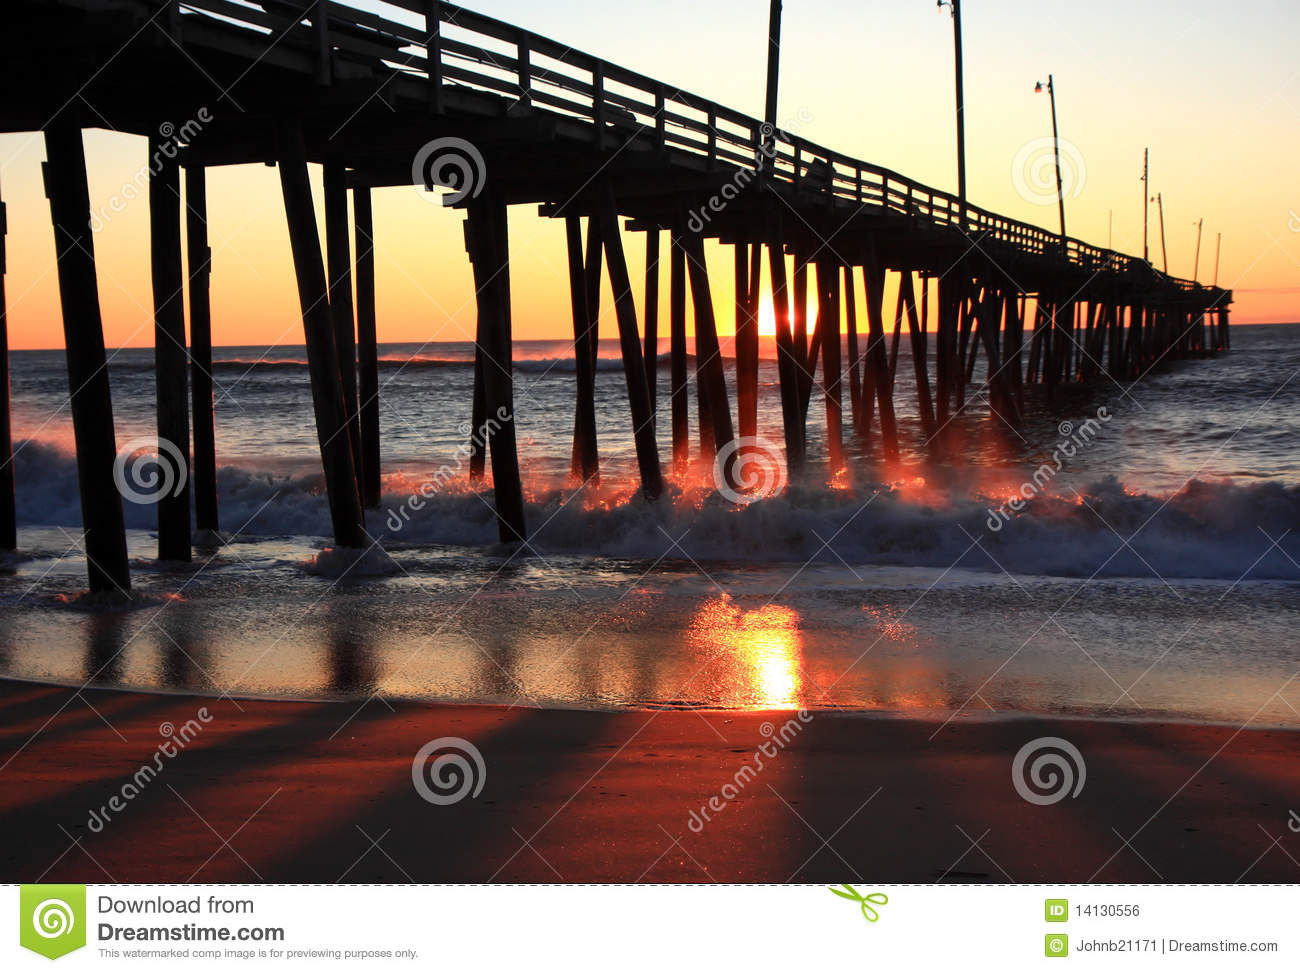 Download Rodanthe Pier stock photo. Image of banks, hatteras, sunset - 14130556